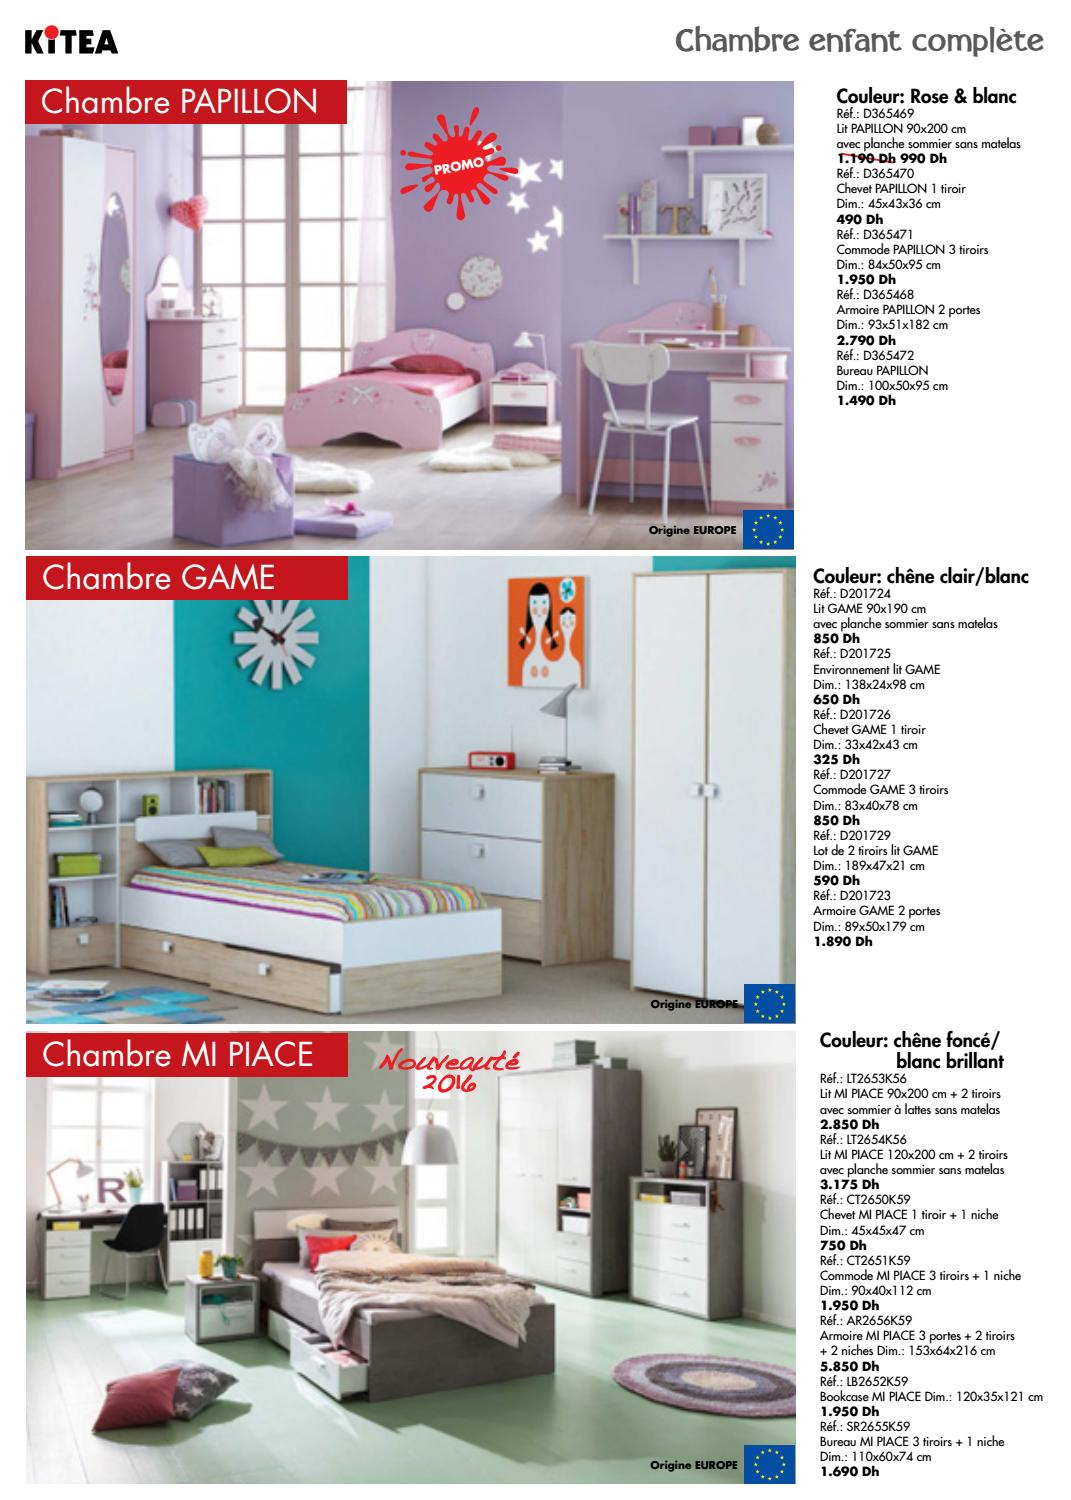 Kitea depliant rdc 2016 by promotion au maroc issuu - Chambre game but ...